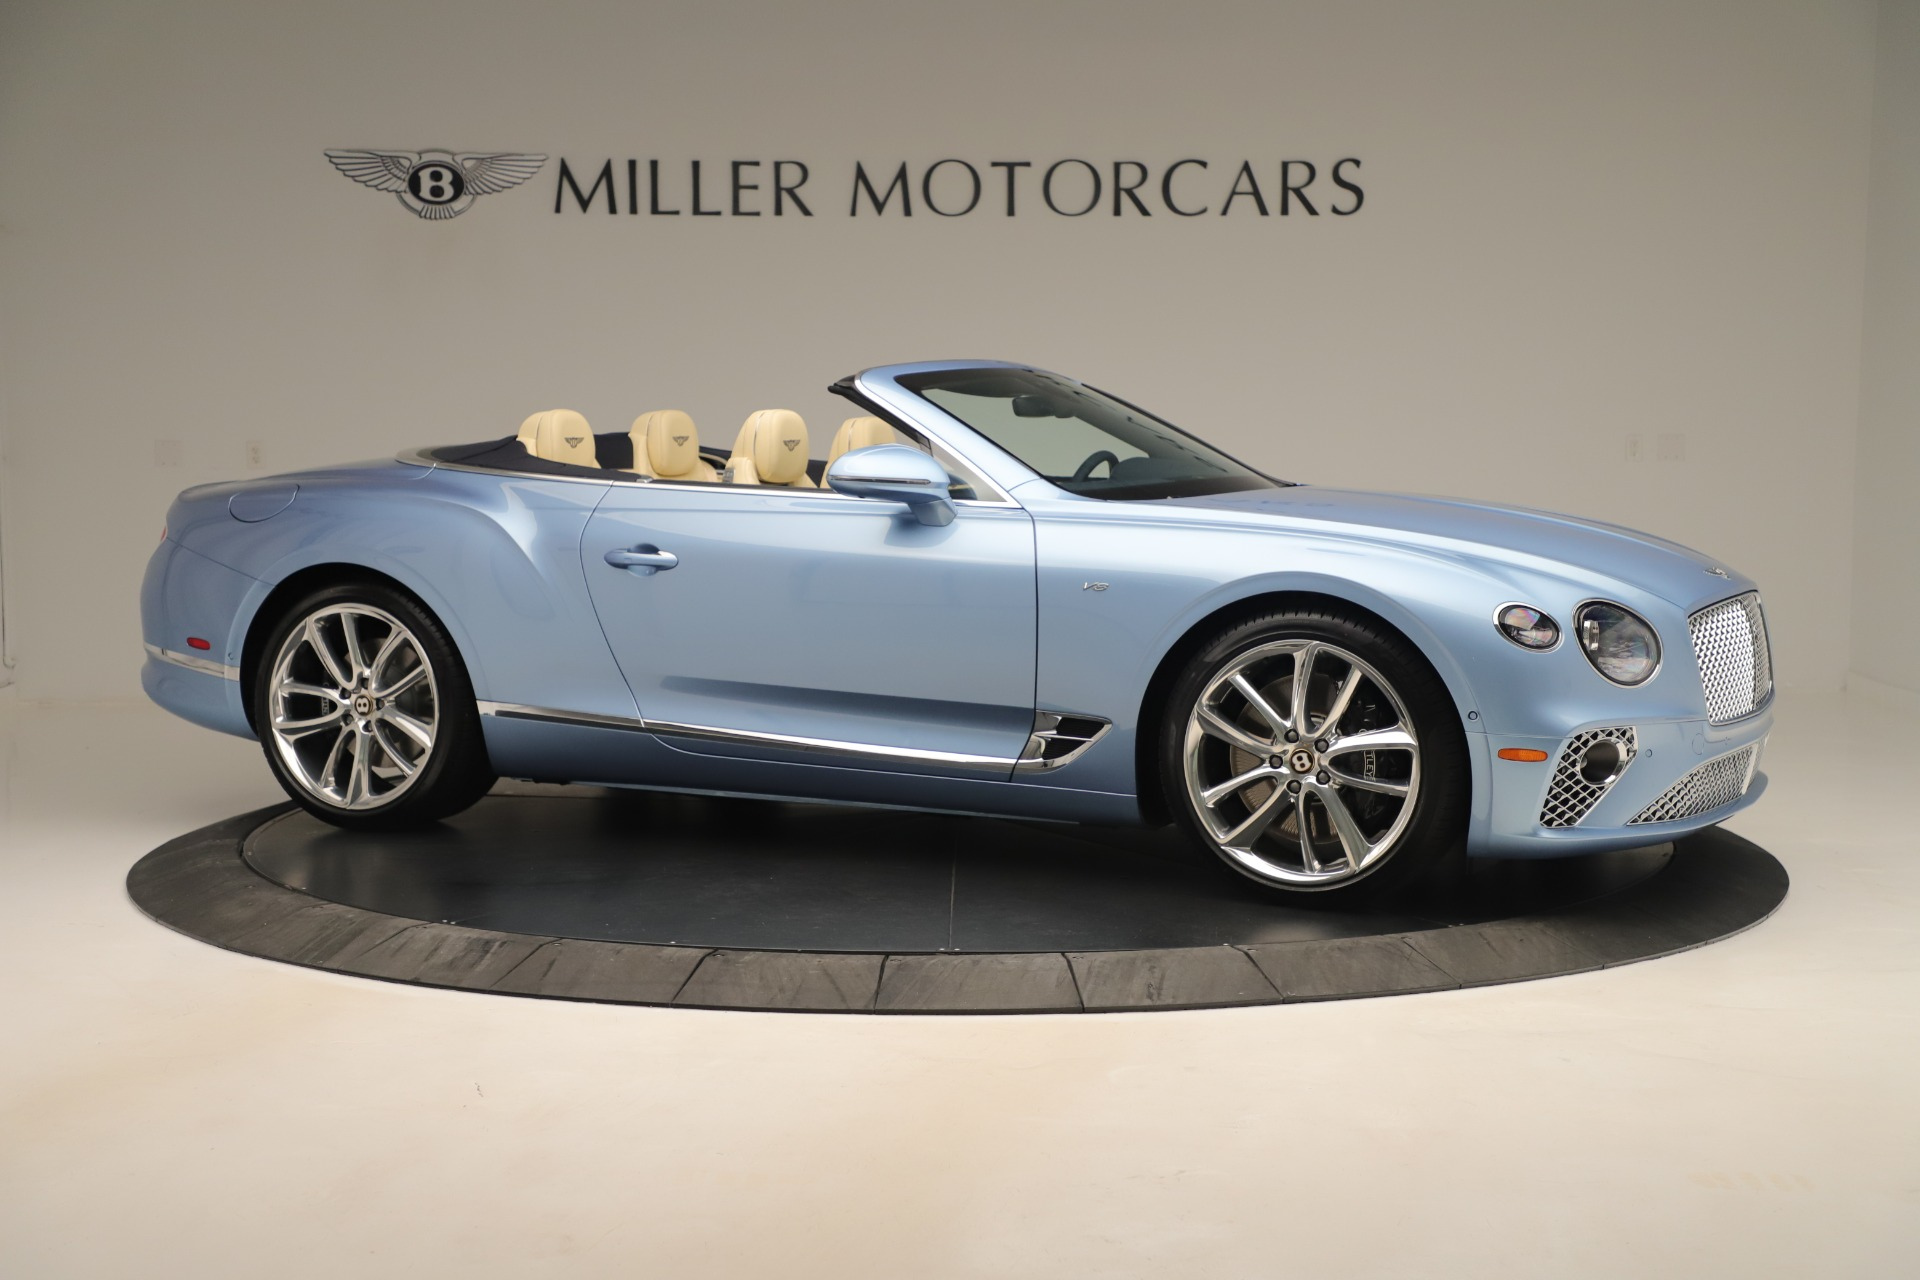 New 2020 Bentley Continental Gtc V8 For Sale Miller Motorcars Stock B1432